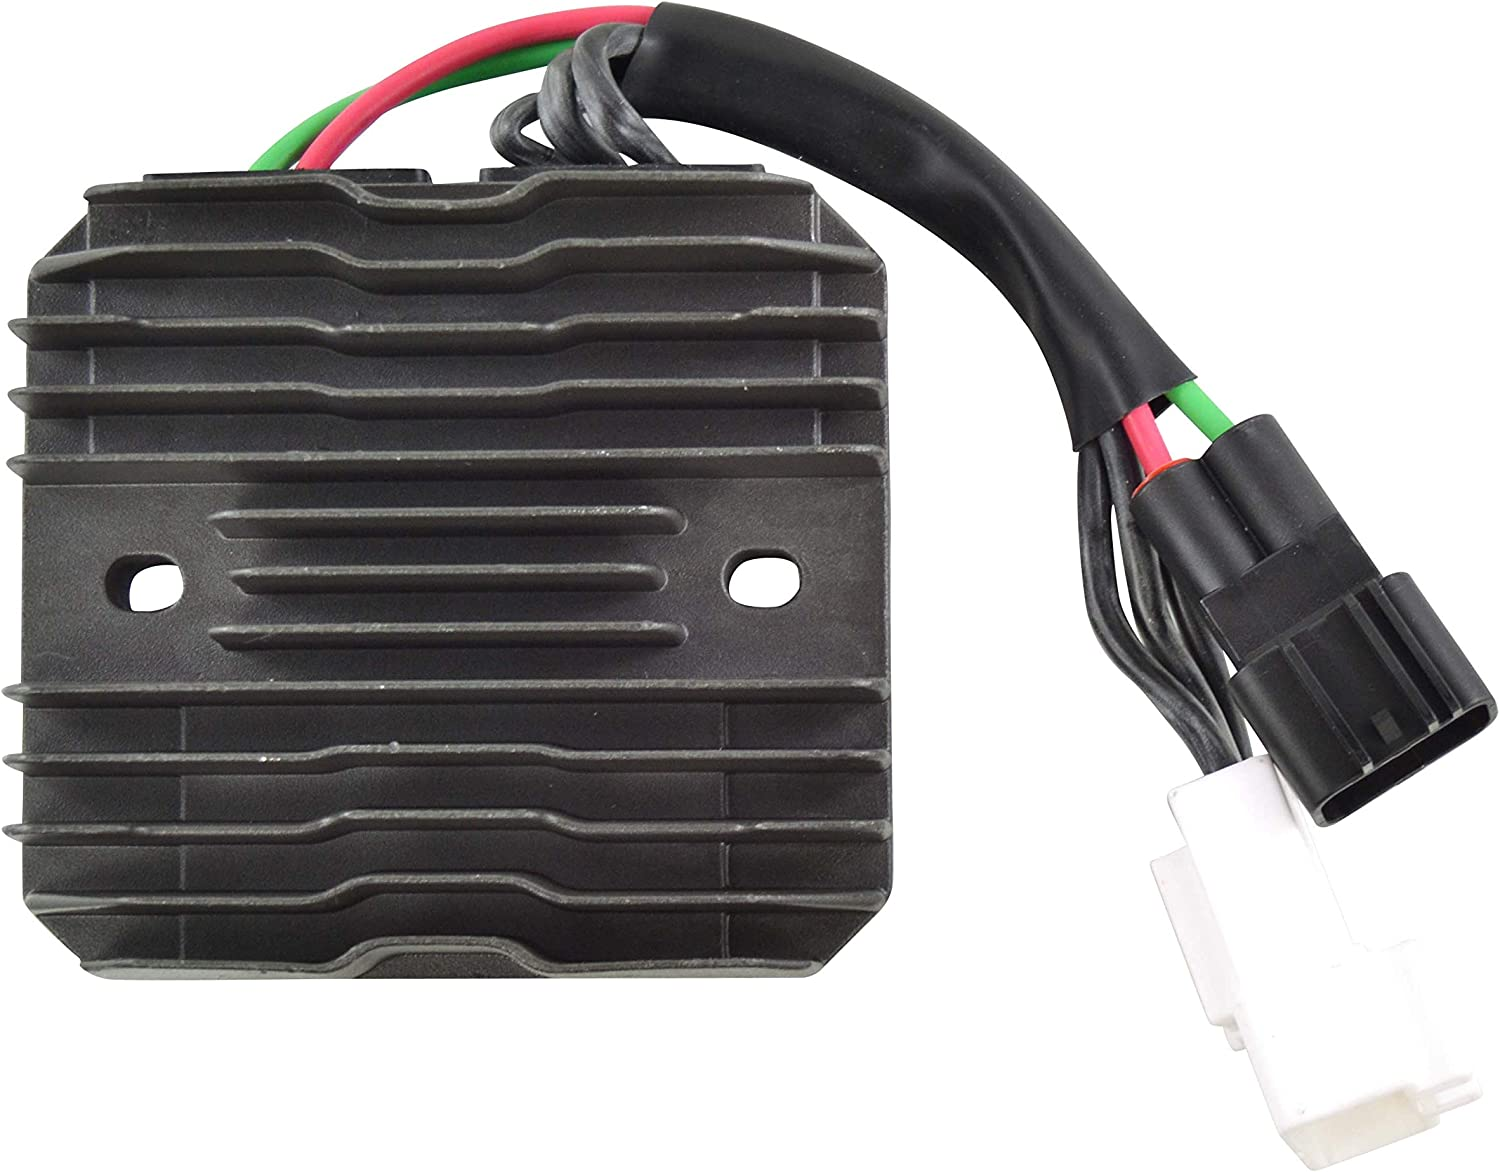 Voltage Regulator Rectifier For Suzuki Boulevard C109 M109 R Burgman AN 650 1800 2003-2009 OEM Repl.# 32800-10G10 32800-10G20 32800-10G00